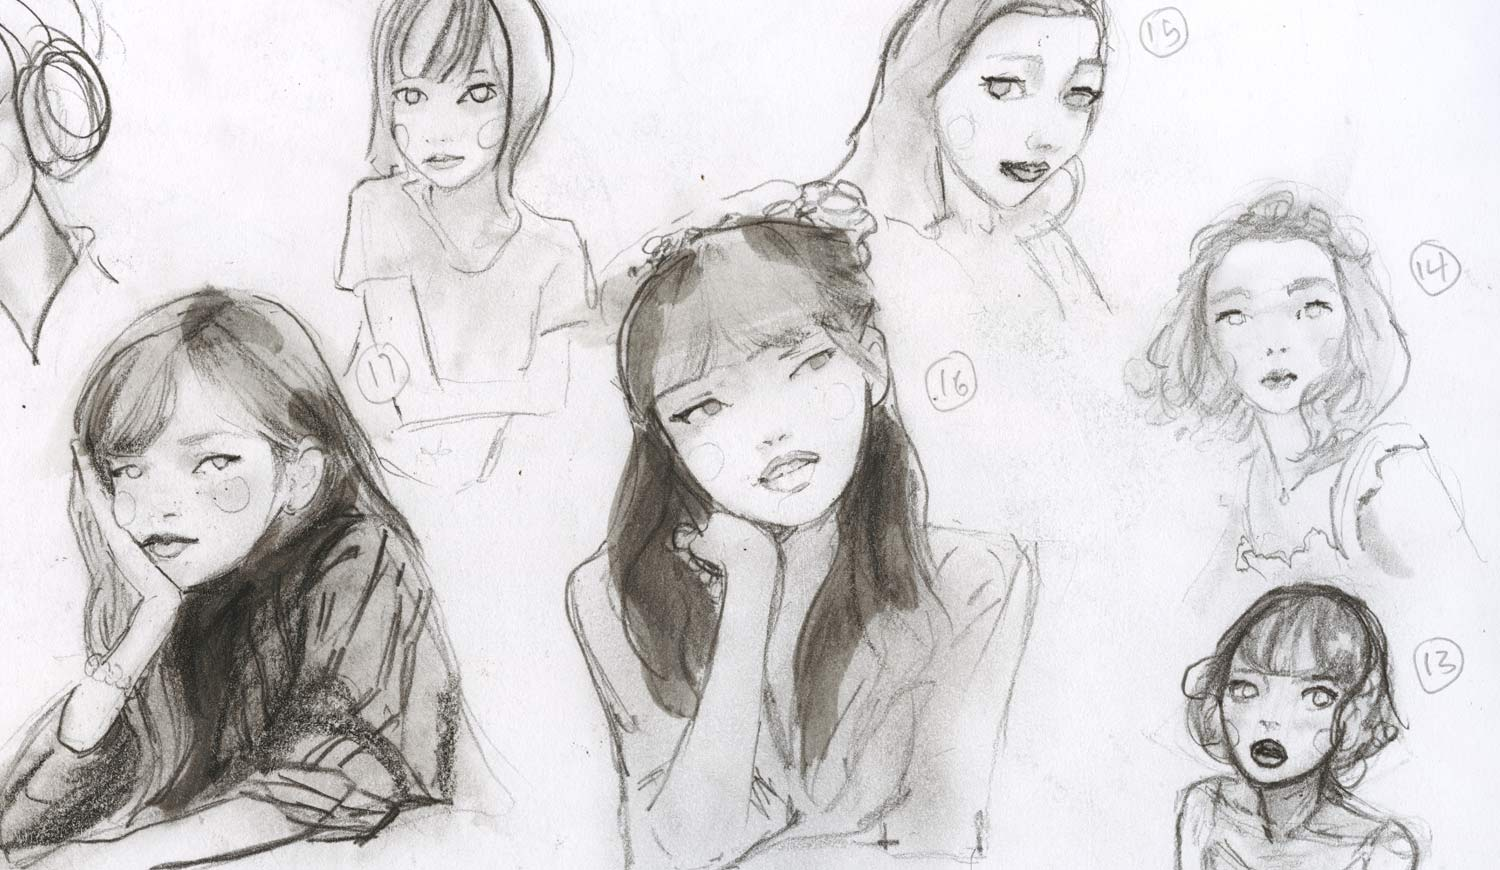 Artist Danny Roberts Sketchbook Portraits study For Manga Character Yuki Tachibana Lost in the Crowd